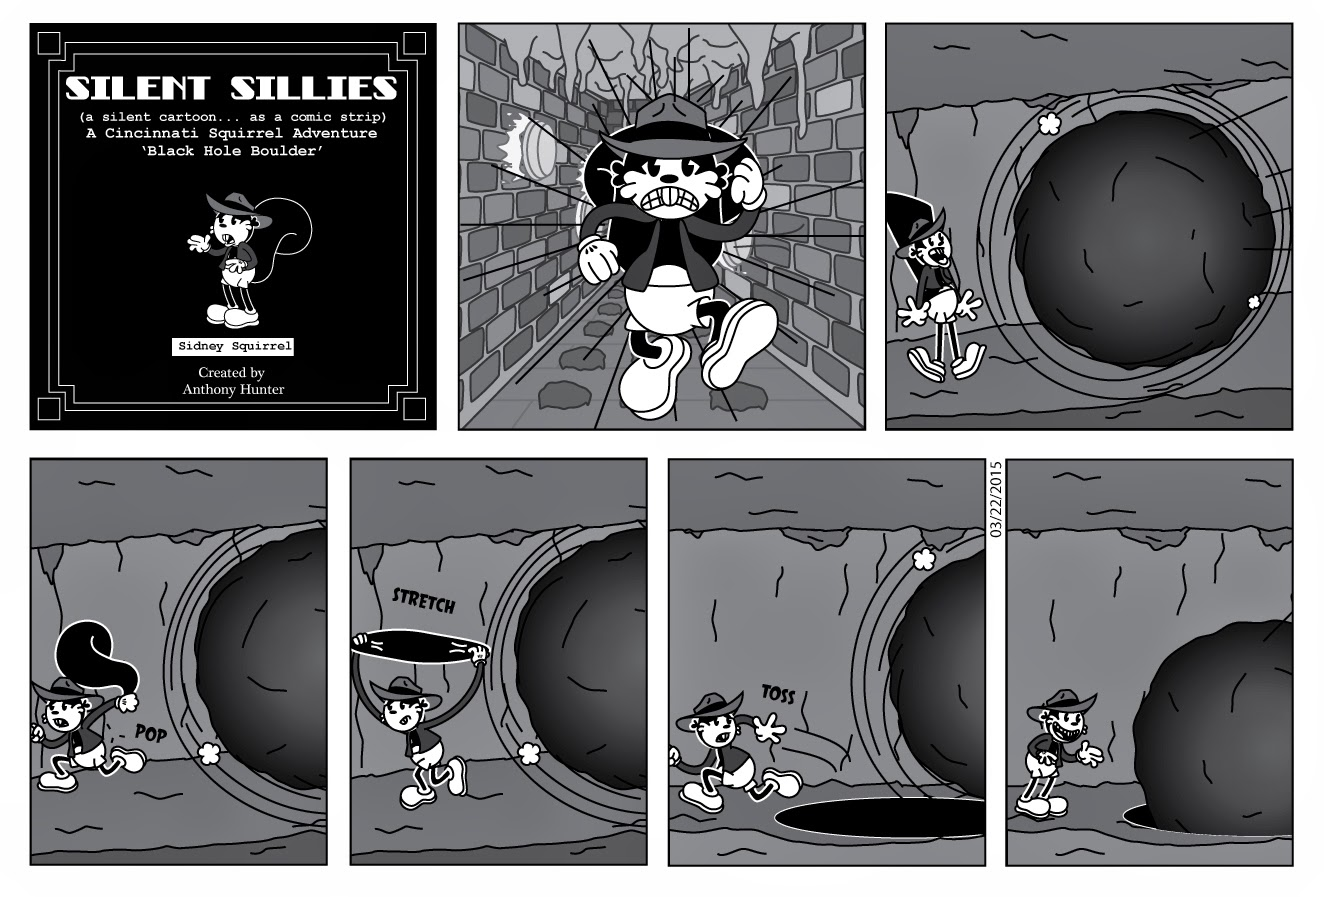 Silent Sillies: Black Hole Boulder